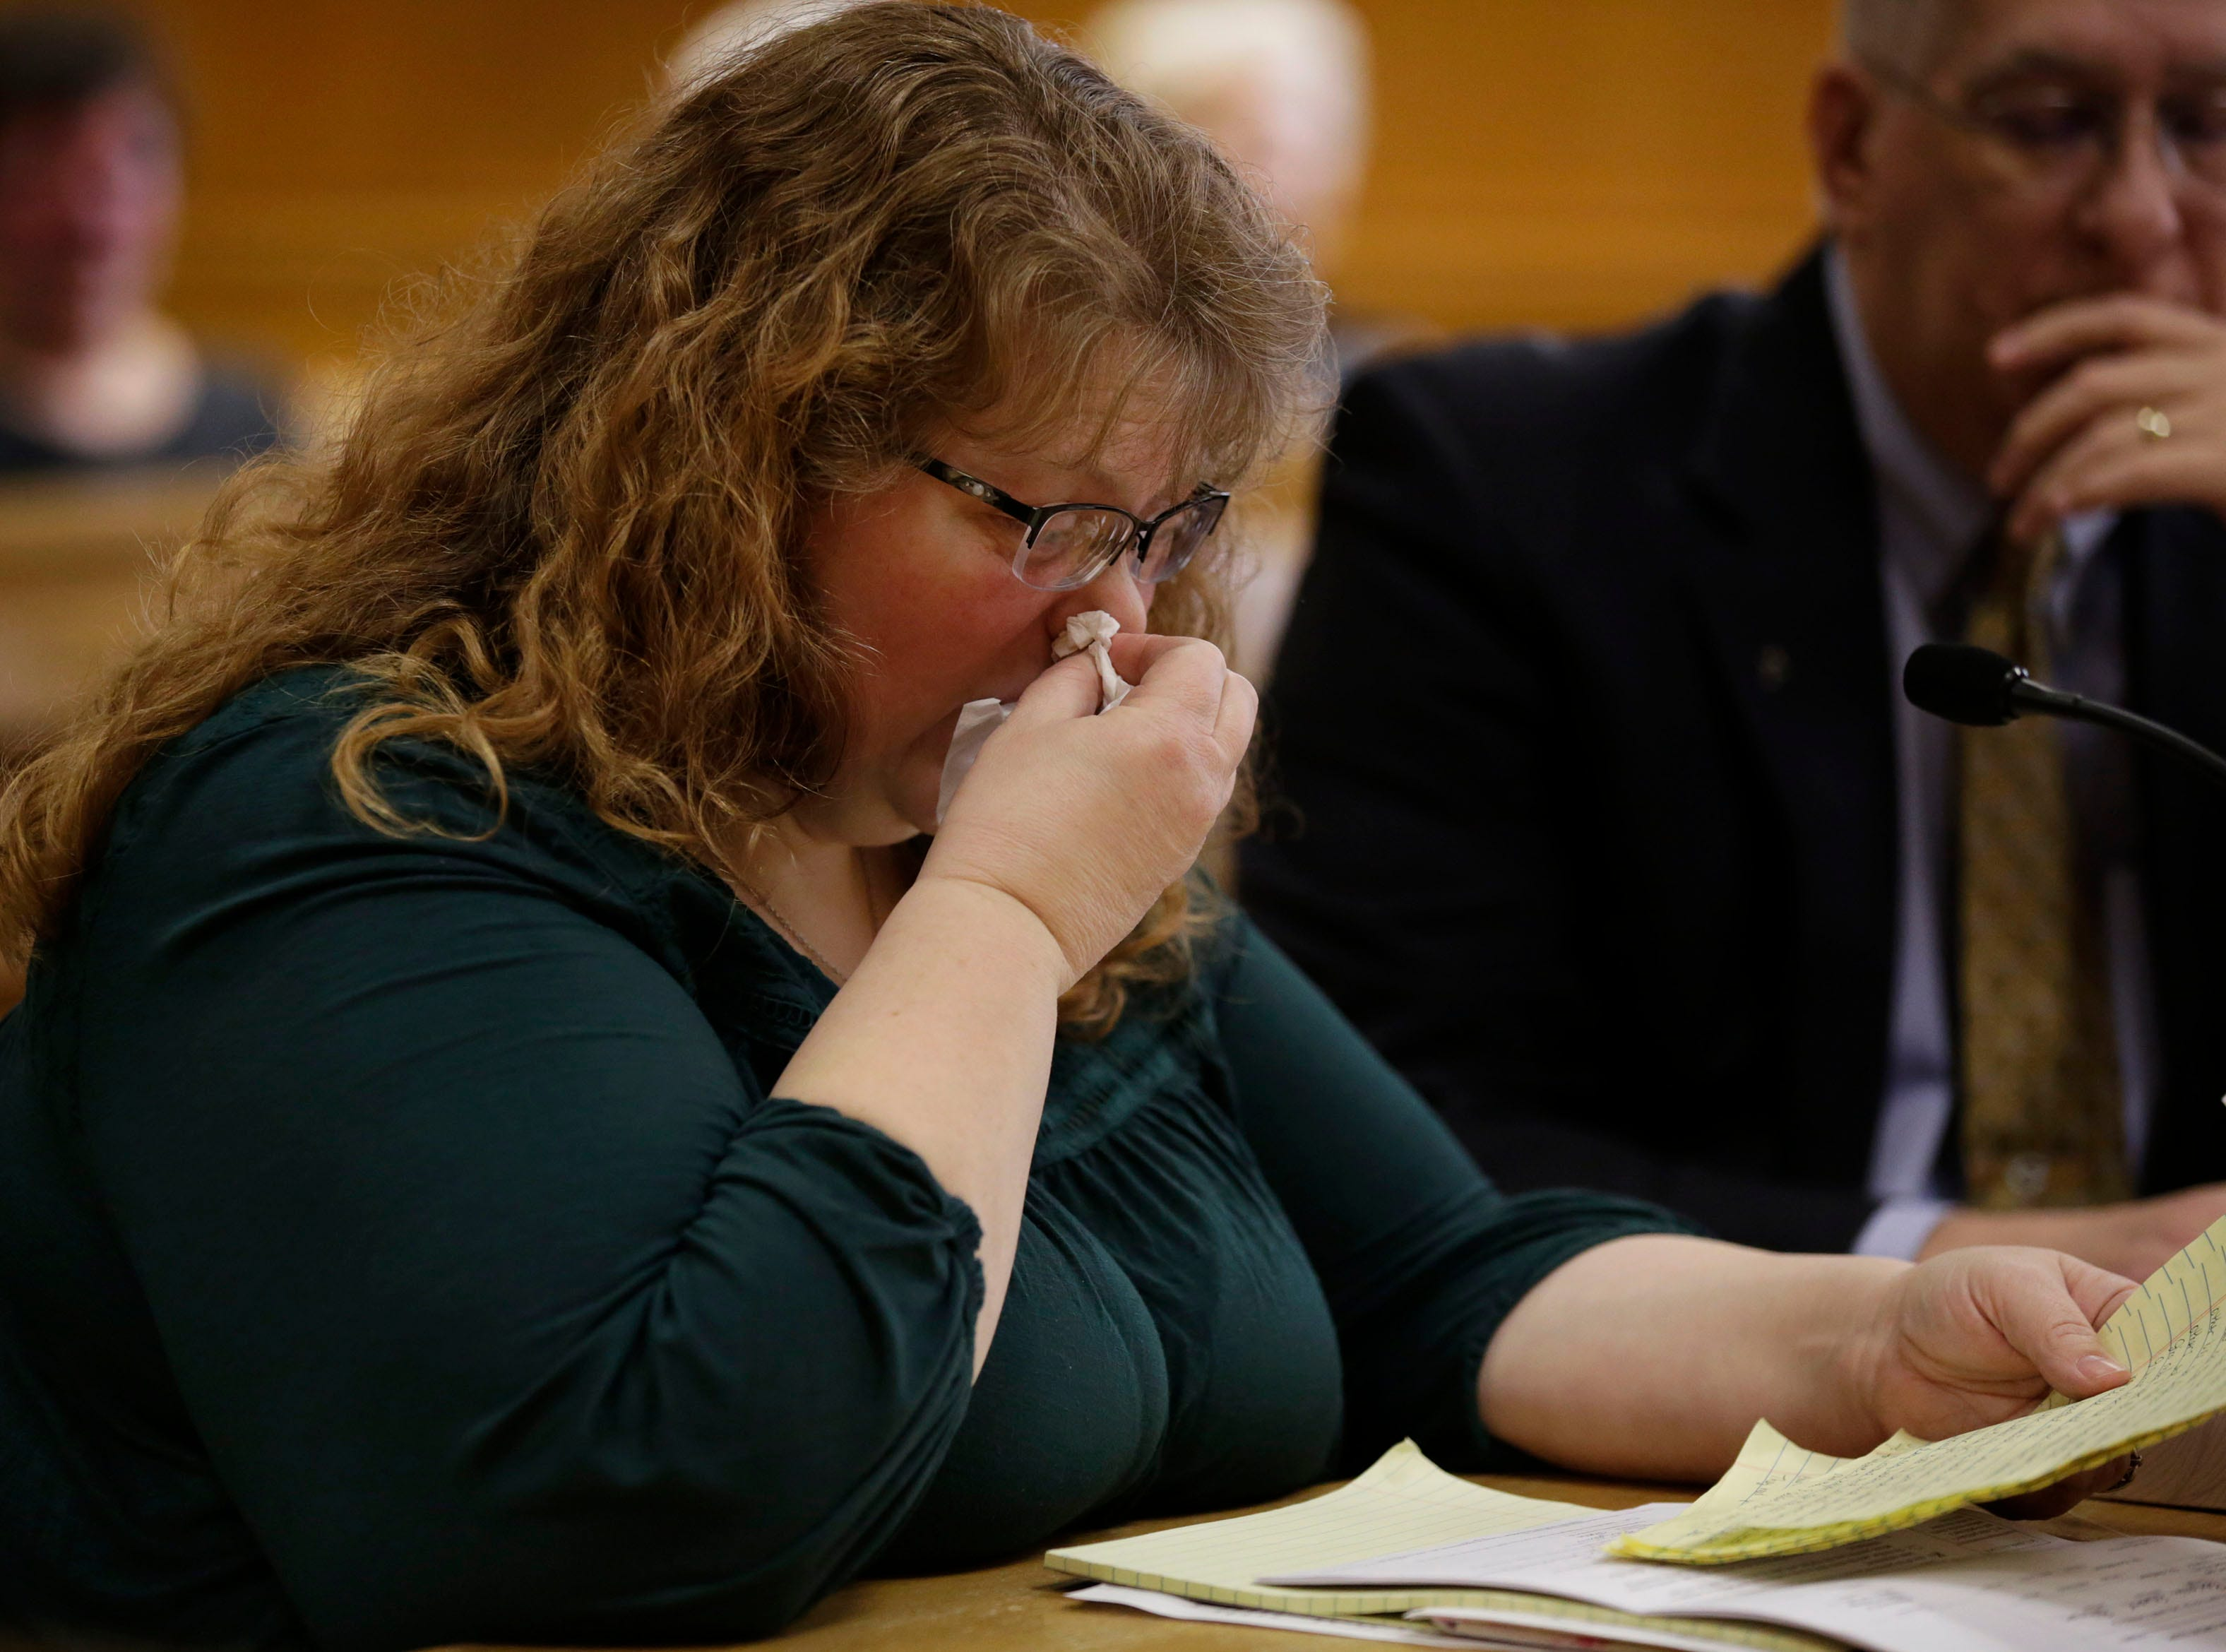 Jacalyn Bohman Race, wife of victim Christopher Race and ex-wife of defendent Gary Bohman, reads a victim impact statement during a sentencing hearing on Tuesday, December 18, 2018, at the Wood County courthouse in Wisconsin Rapids, Wis. Bohman was sentenced to life in prison with no possibility of parole for the murder of Christopher Race. Tork Mason/USA TODAY NETWORK-Wisconsin